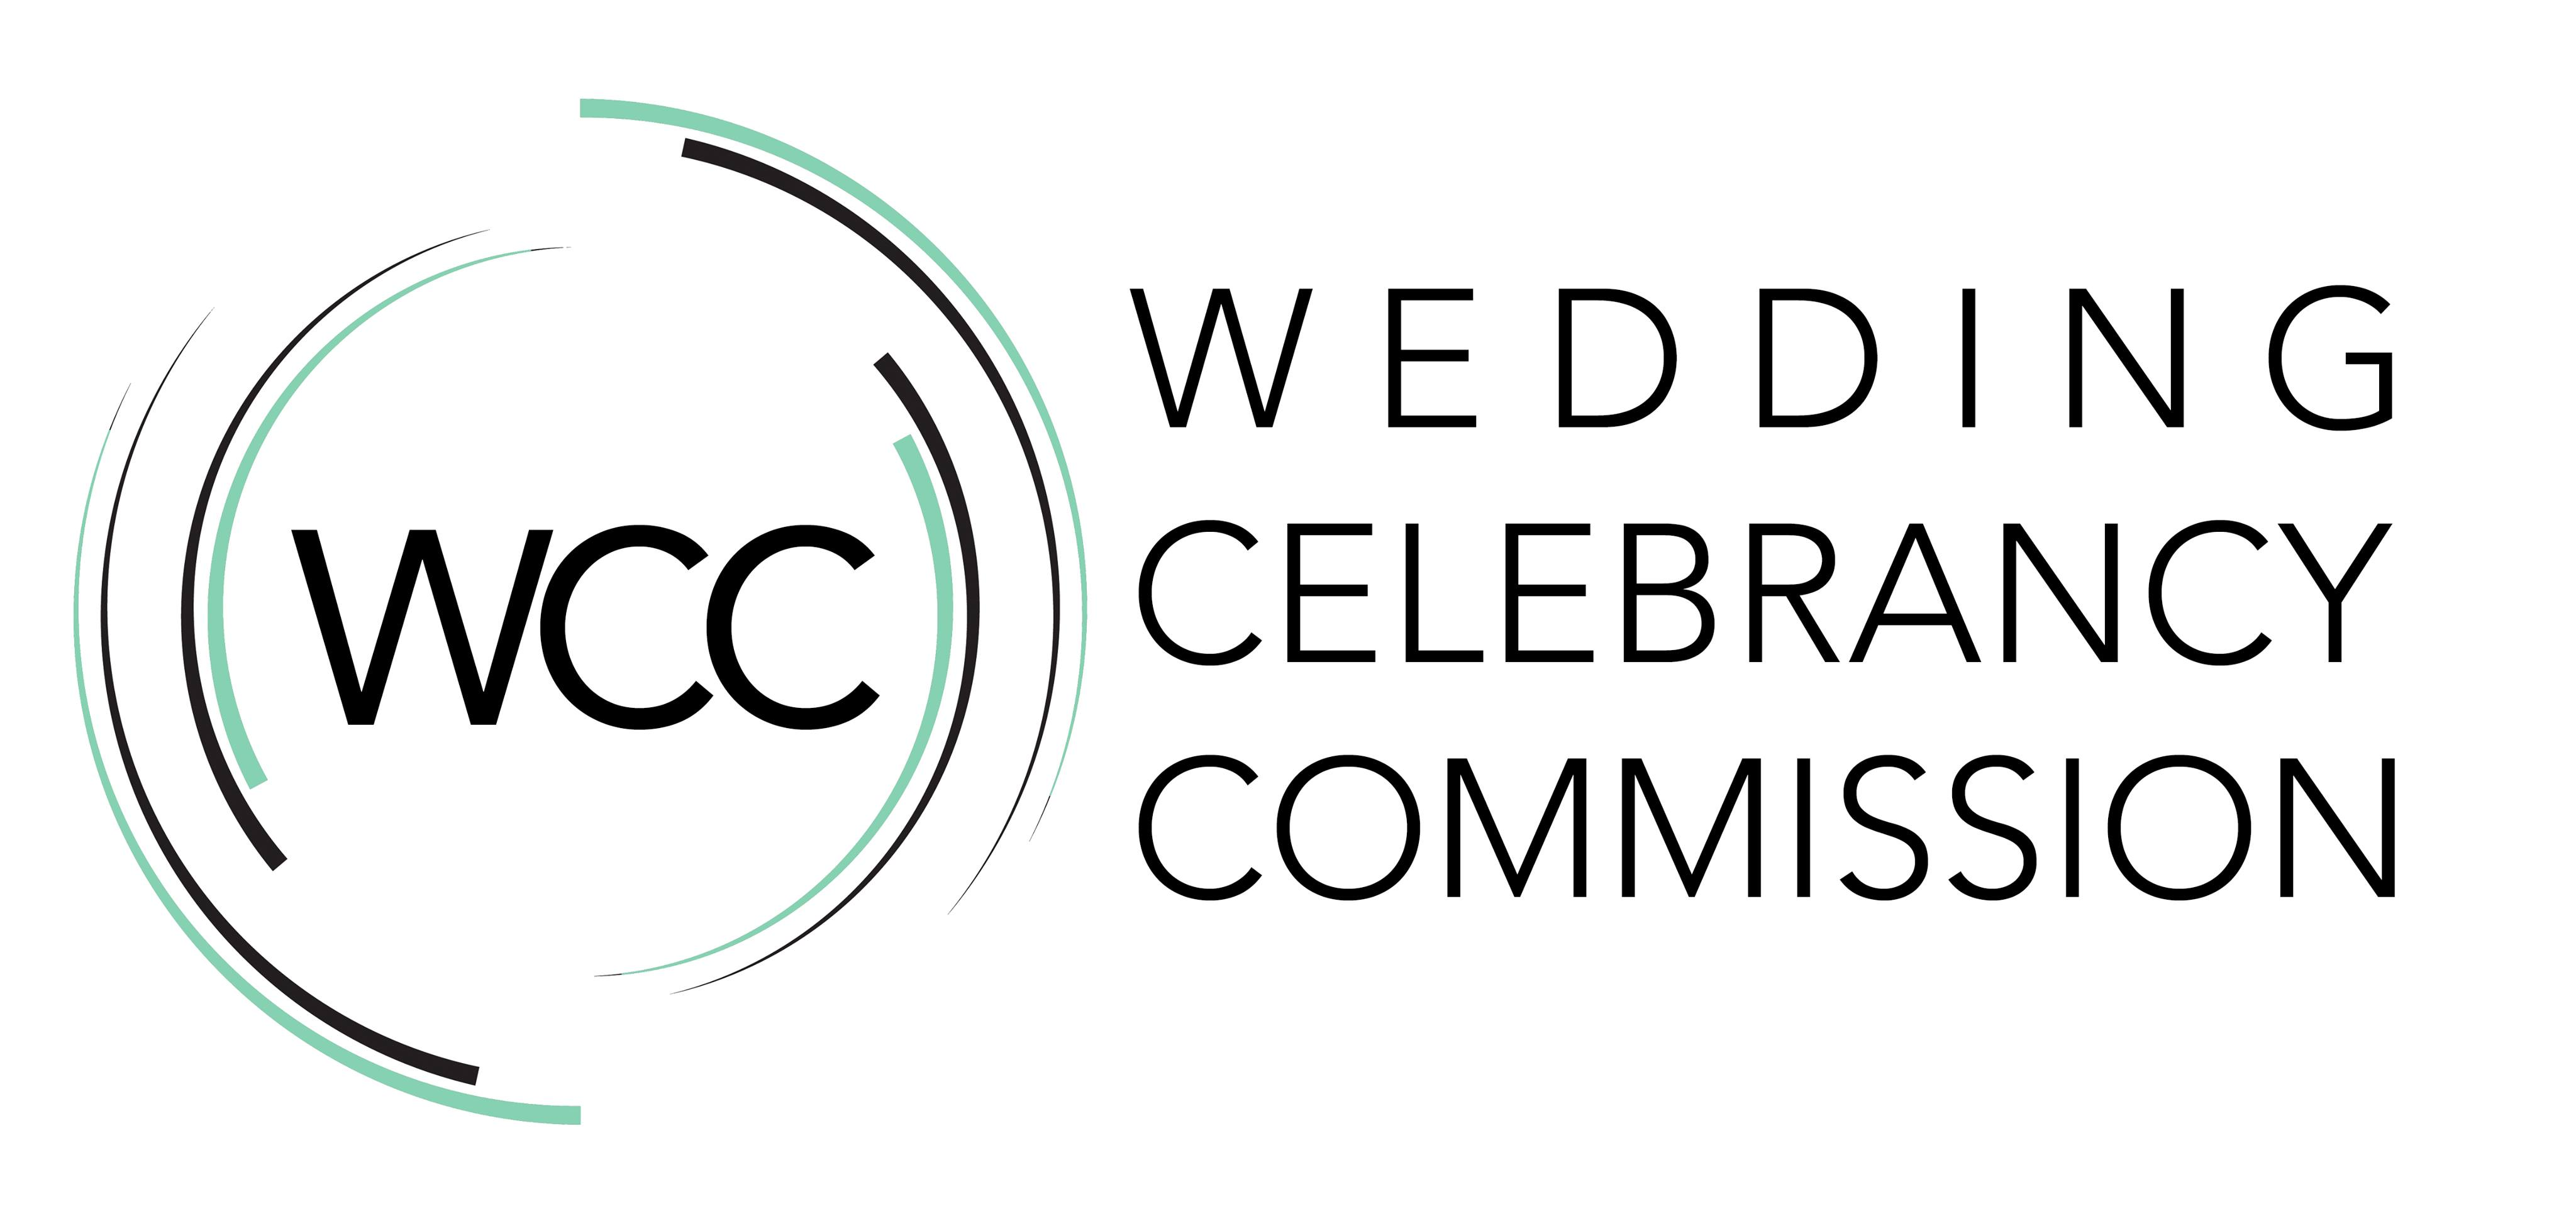 Wedding Celebrancy Commission logo with green and black circles around it.